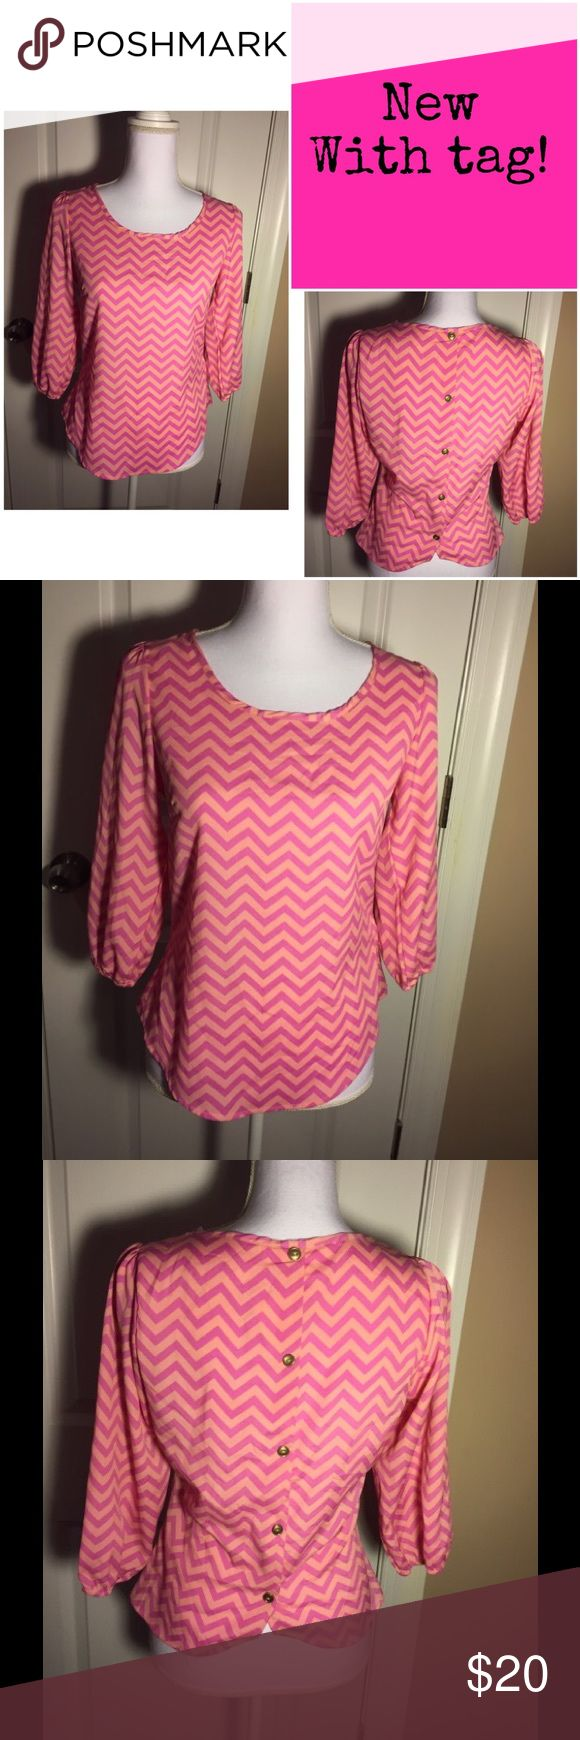 NWT pink chevron blouse New with tag! Peaches N Cream pink chevron blouse. Size small. 100% polyester. Cute back, button detailing. Peaches N Cream Tops Blouses